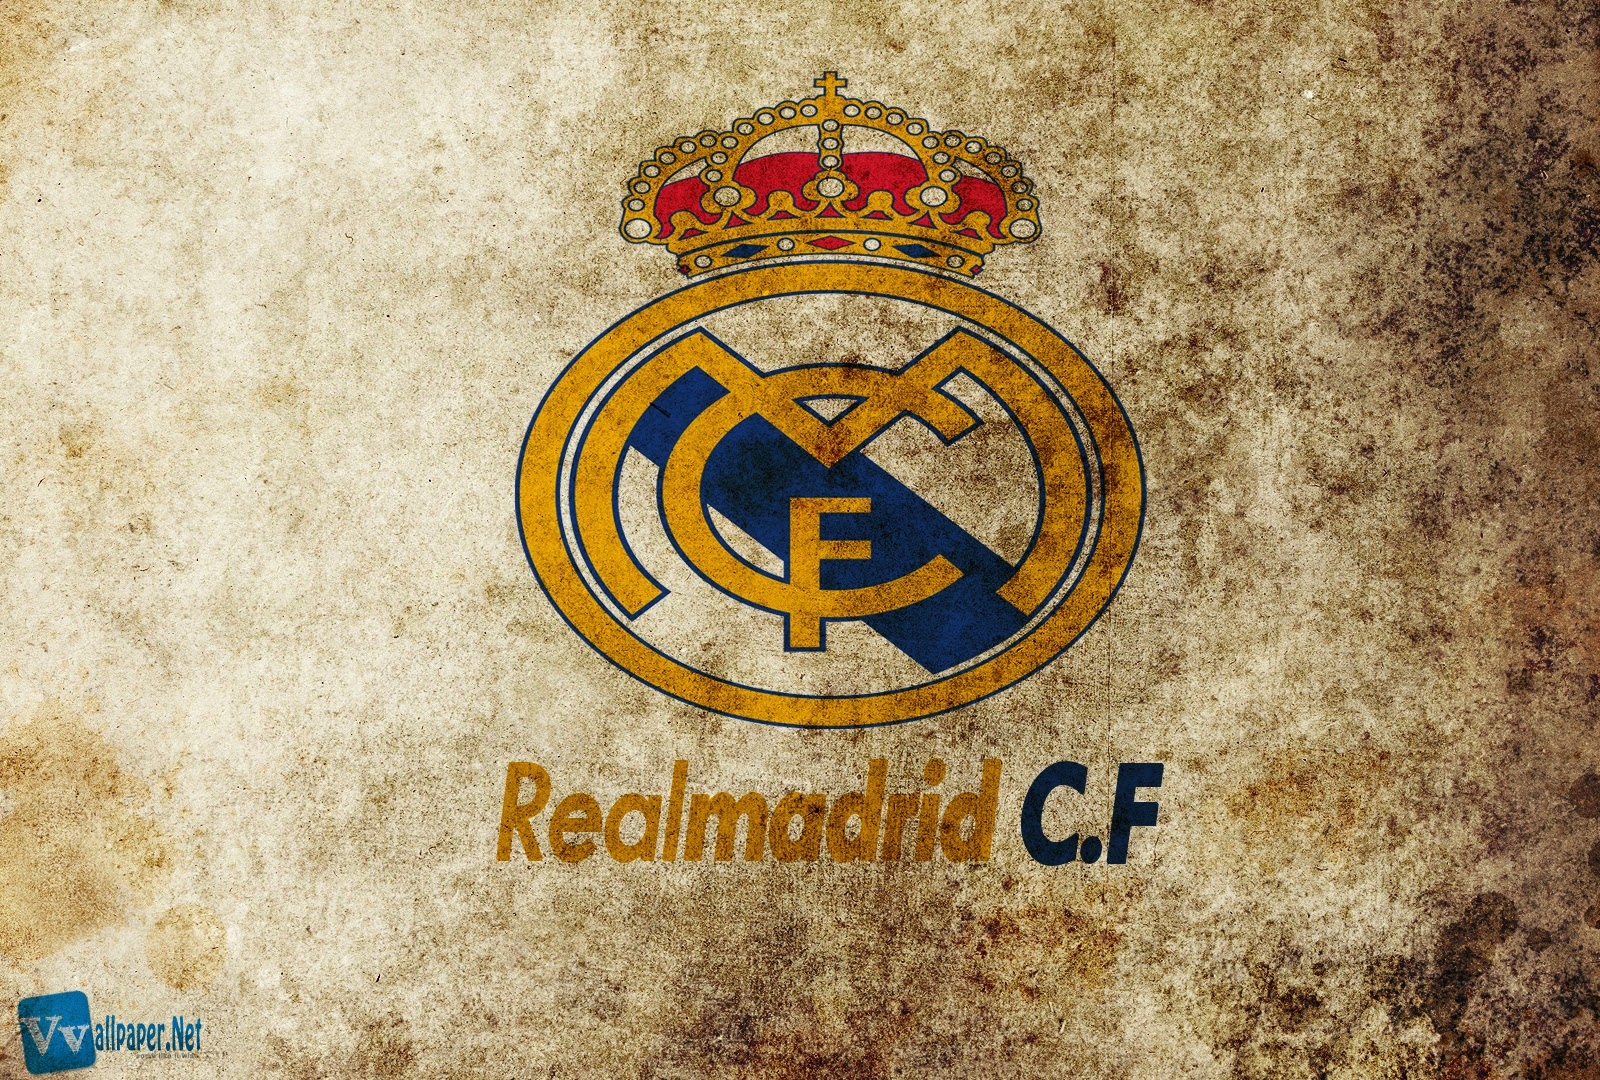 Real Madrid Mobile Phone Wallpapers Hd Wallpaper For Cell 1600x1080